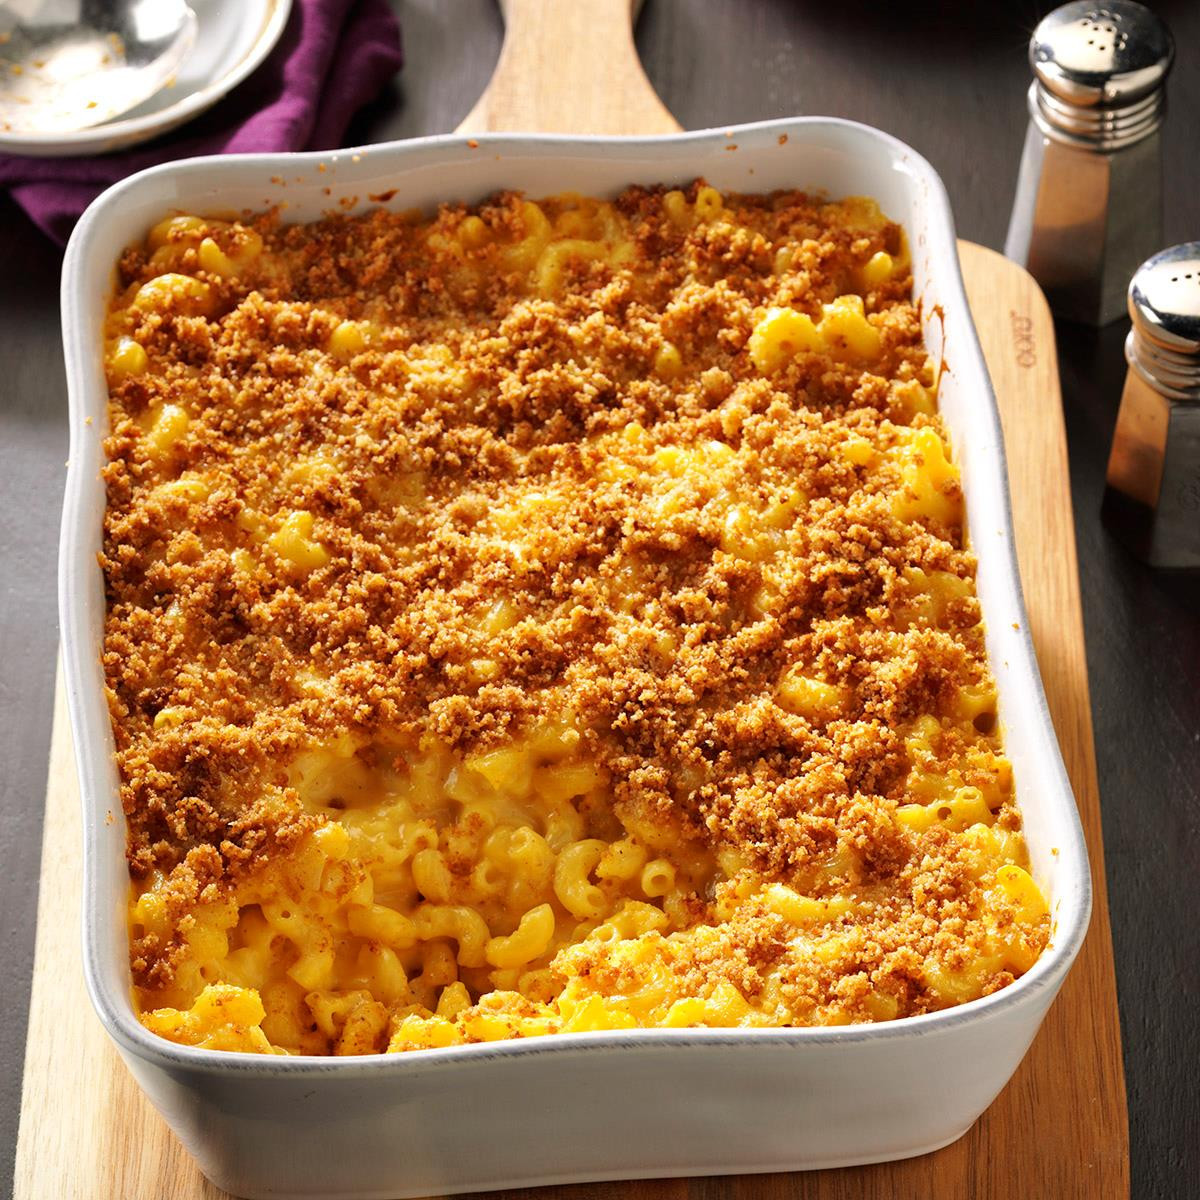 Simple Baked Macaroni And Cheese Recipe  Baked Mac and Cheese Recipe